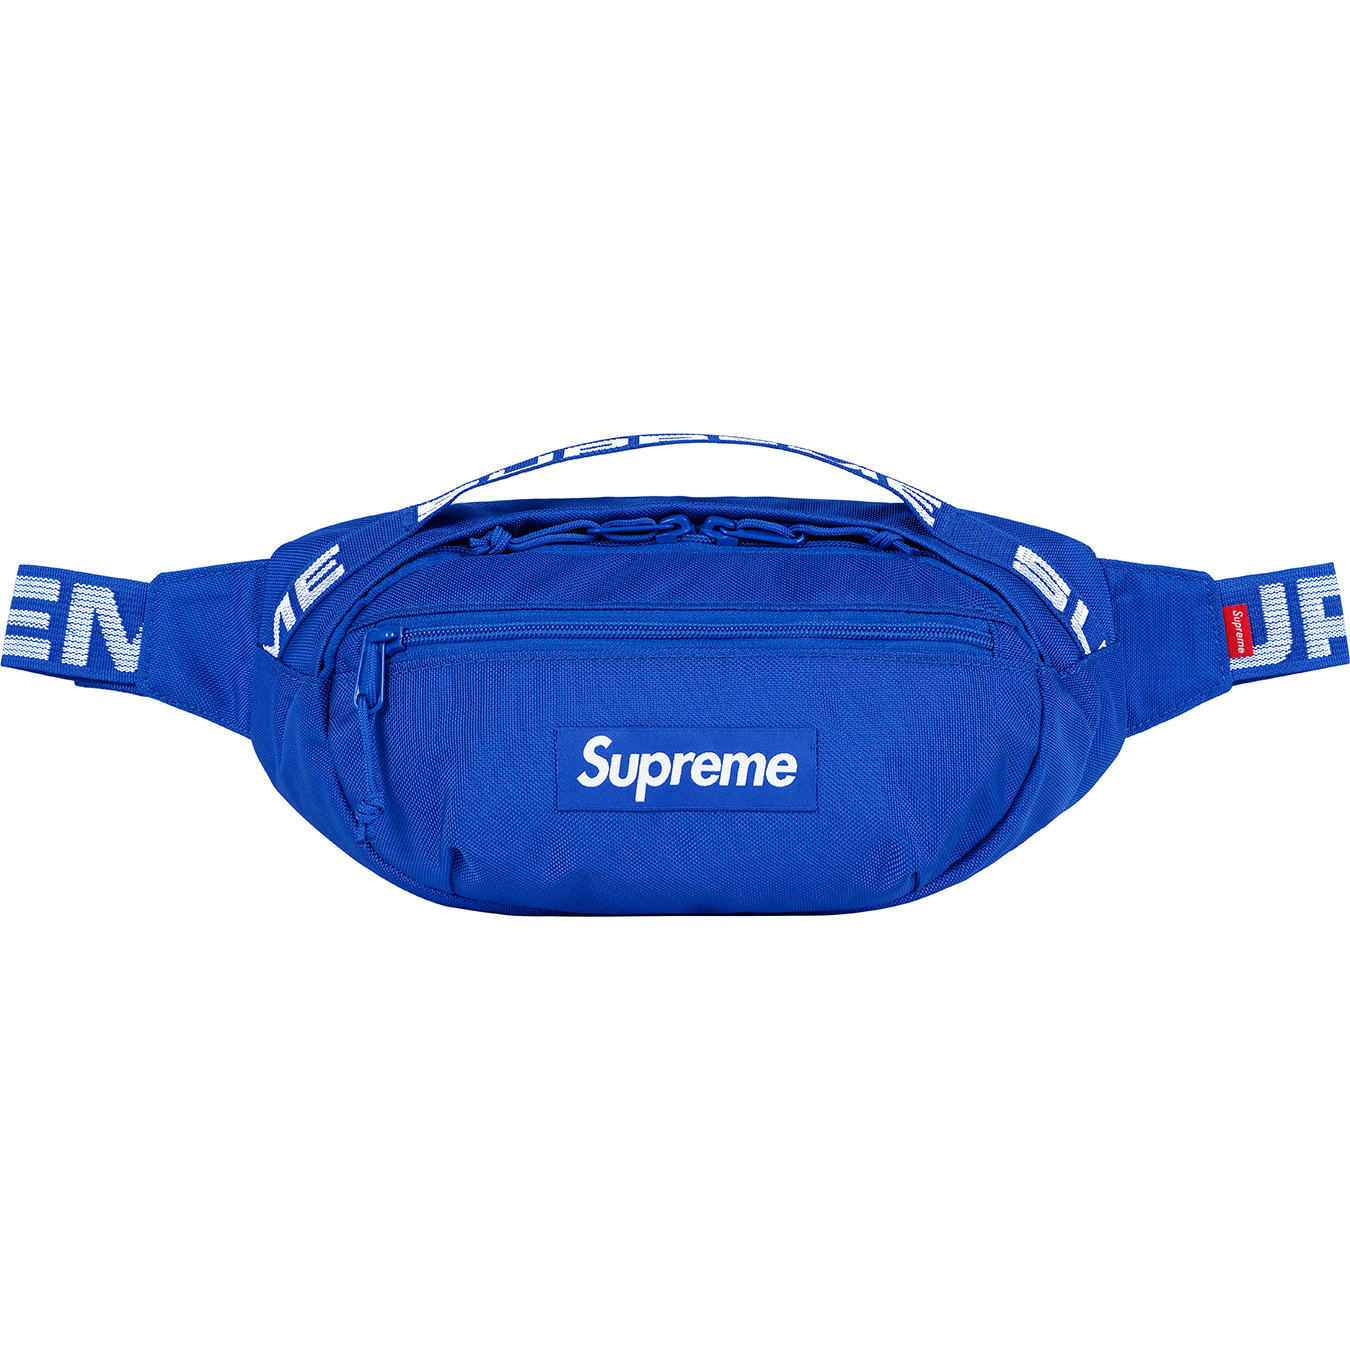 supreme-18ss-spring-summer-waist-bag